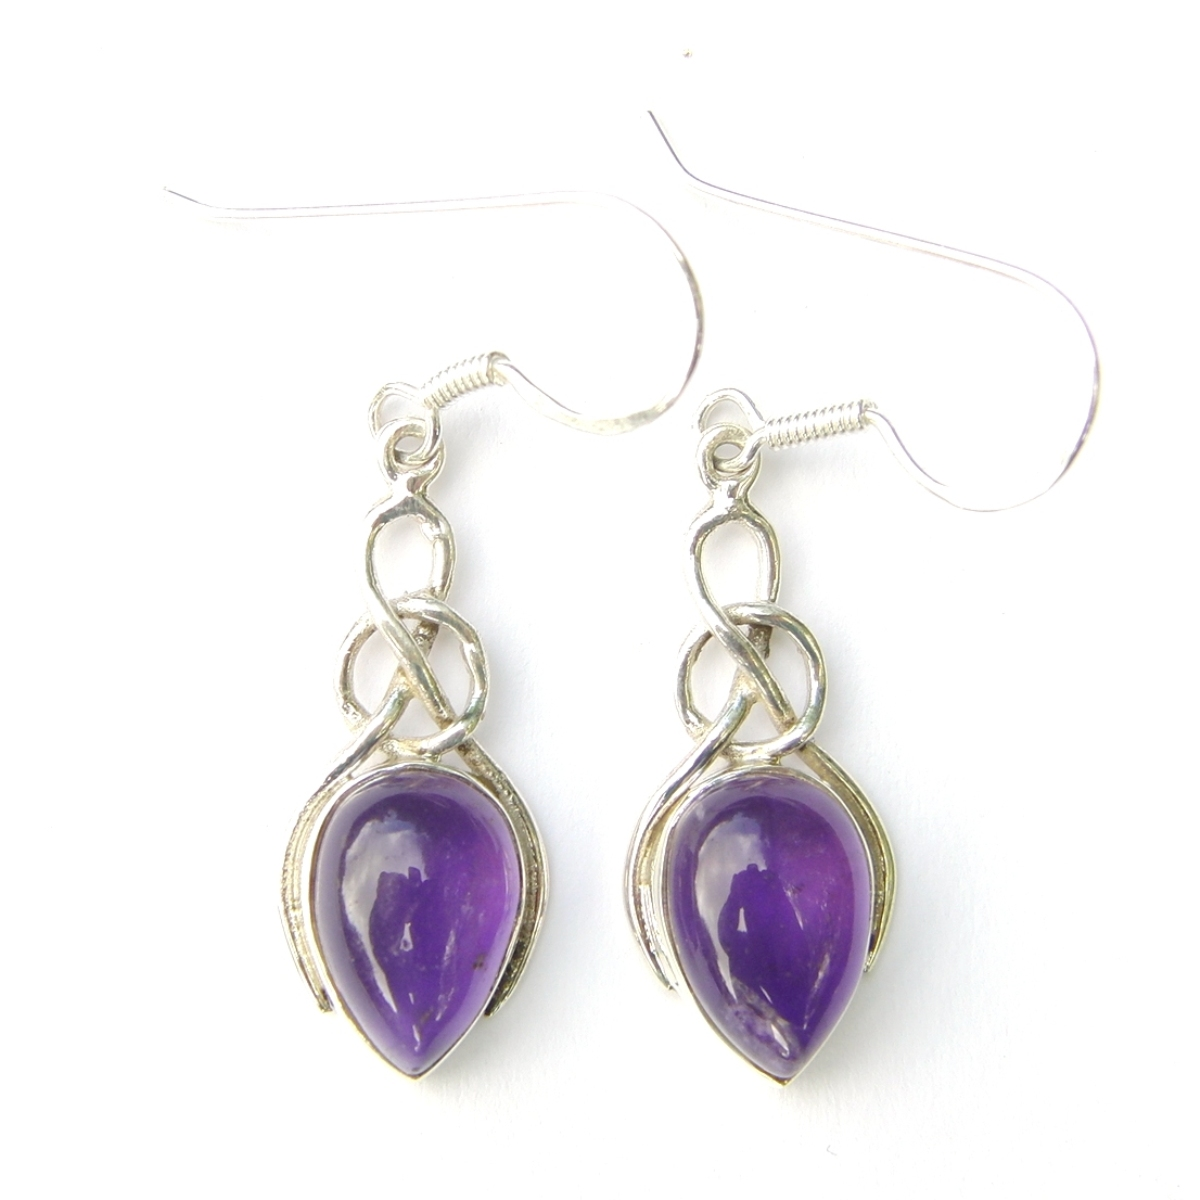 Amethyst Teardrop Knot Earrings.